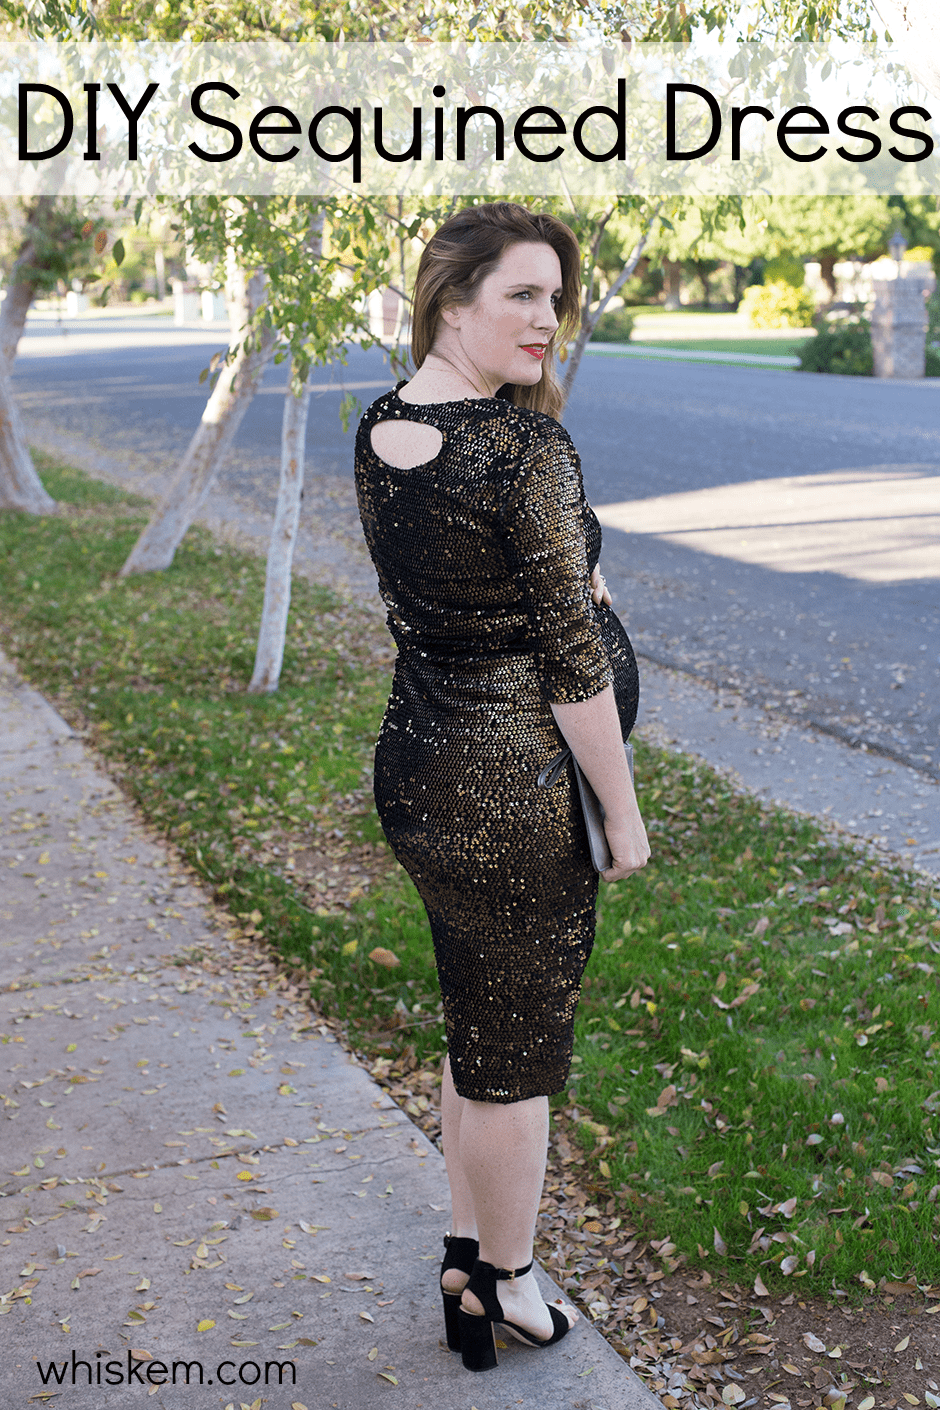 e3f4946c3829 Sequined fabric from Joann Fabrics (in store) || Heels: Sam Edelman (on  sale!)